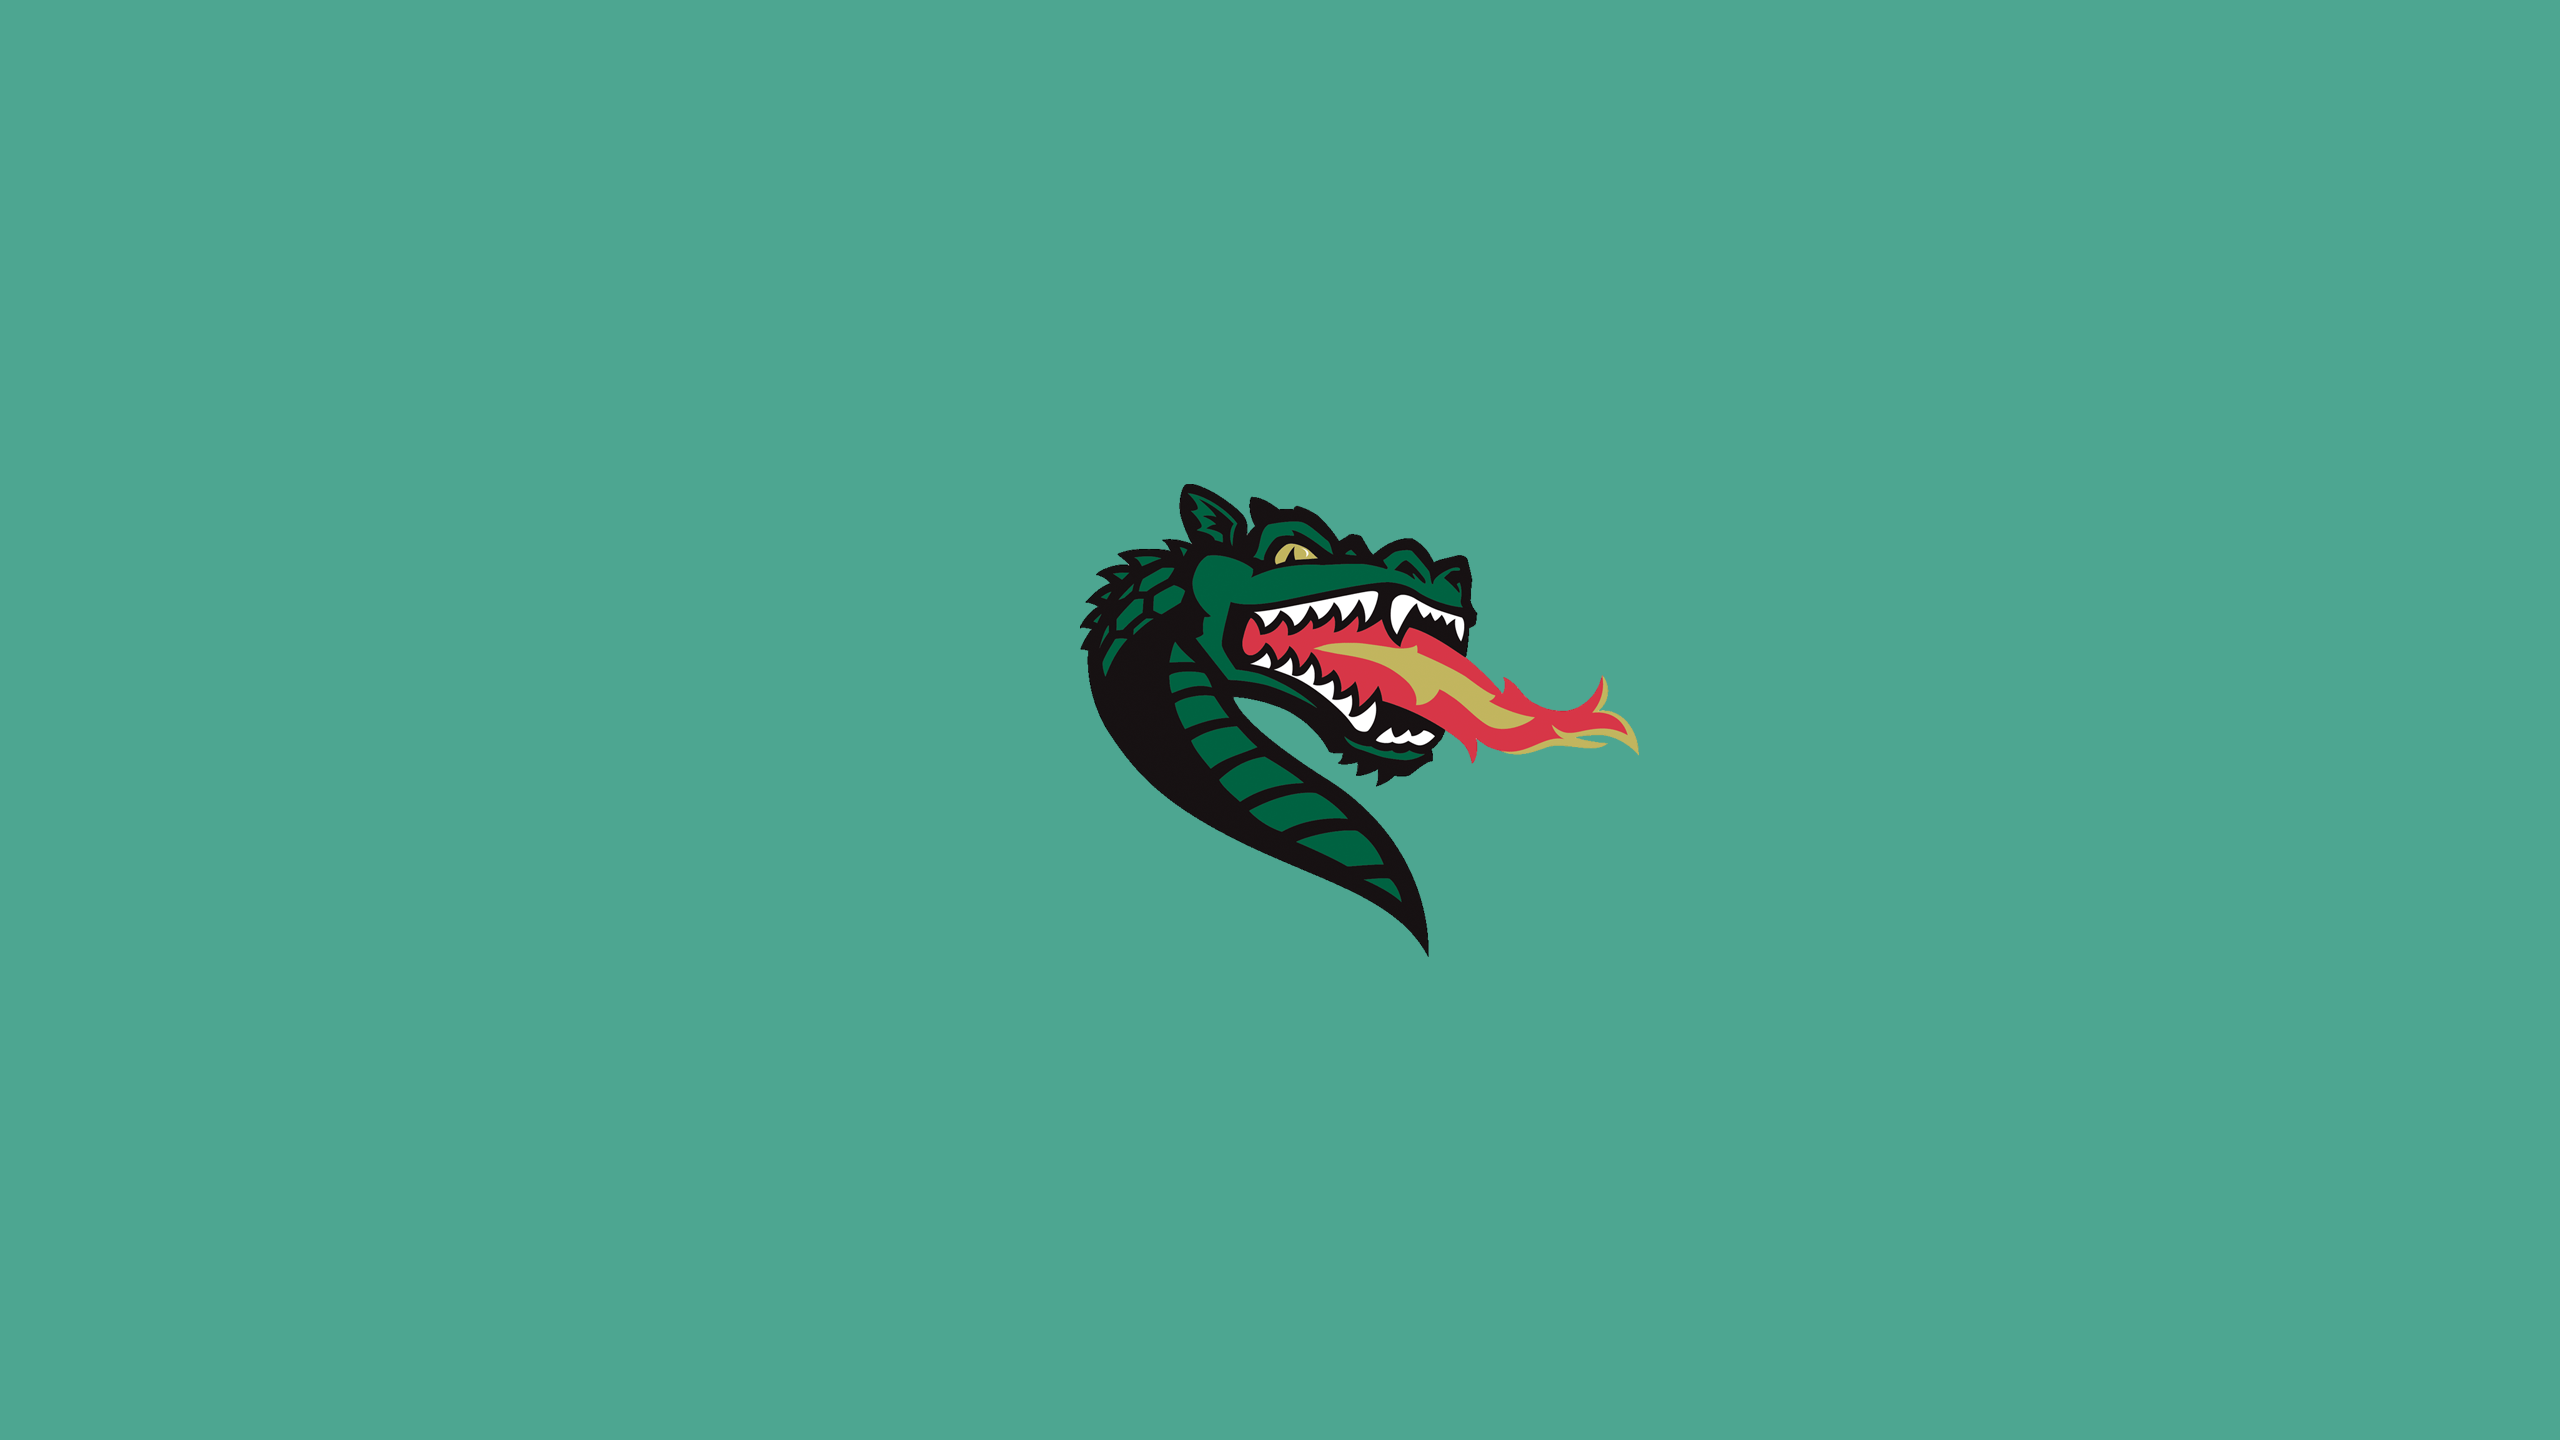 University of Alabama-Birmingham Blazers